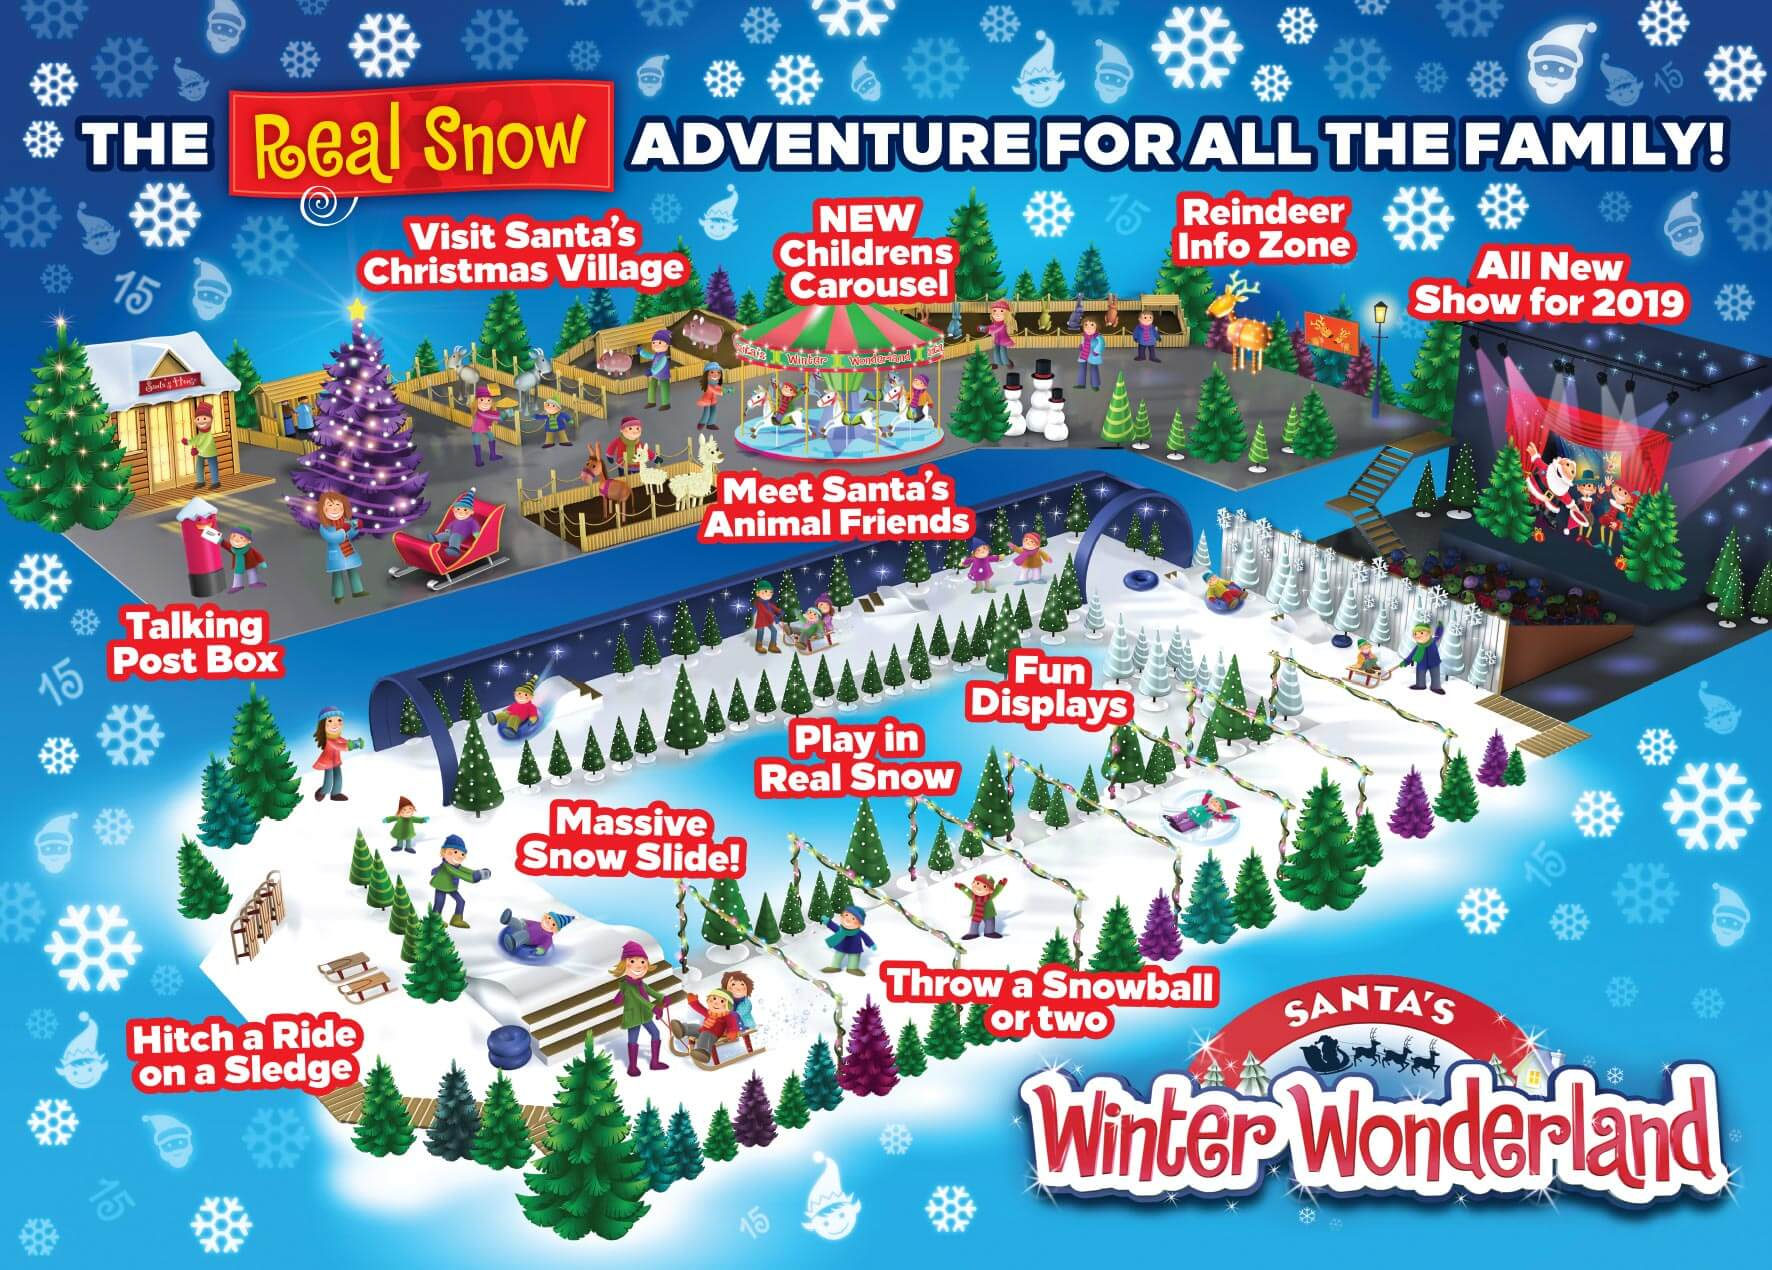 The Winter Wonderland Map - Santa's Winter Wonderland - SnowDome on solvang ca map, california missions map, north county california map, sports map, downtown solvang map, county plat map, watercolor resort map, pleasanton california map, last chance canyon trail map, jefferson new hampshire map, north pole map, bunny map, paul map, mermaid map, baseball map, monterey ca map, jesus map, historic philadelphia map, solvang wineries map, police map,